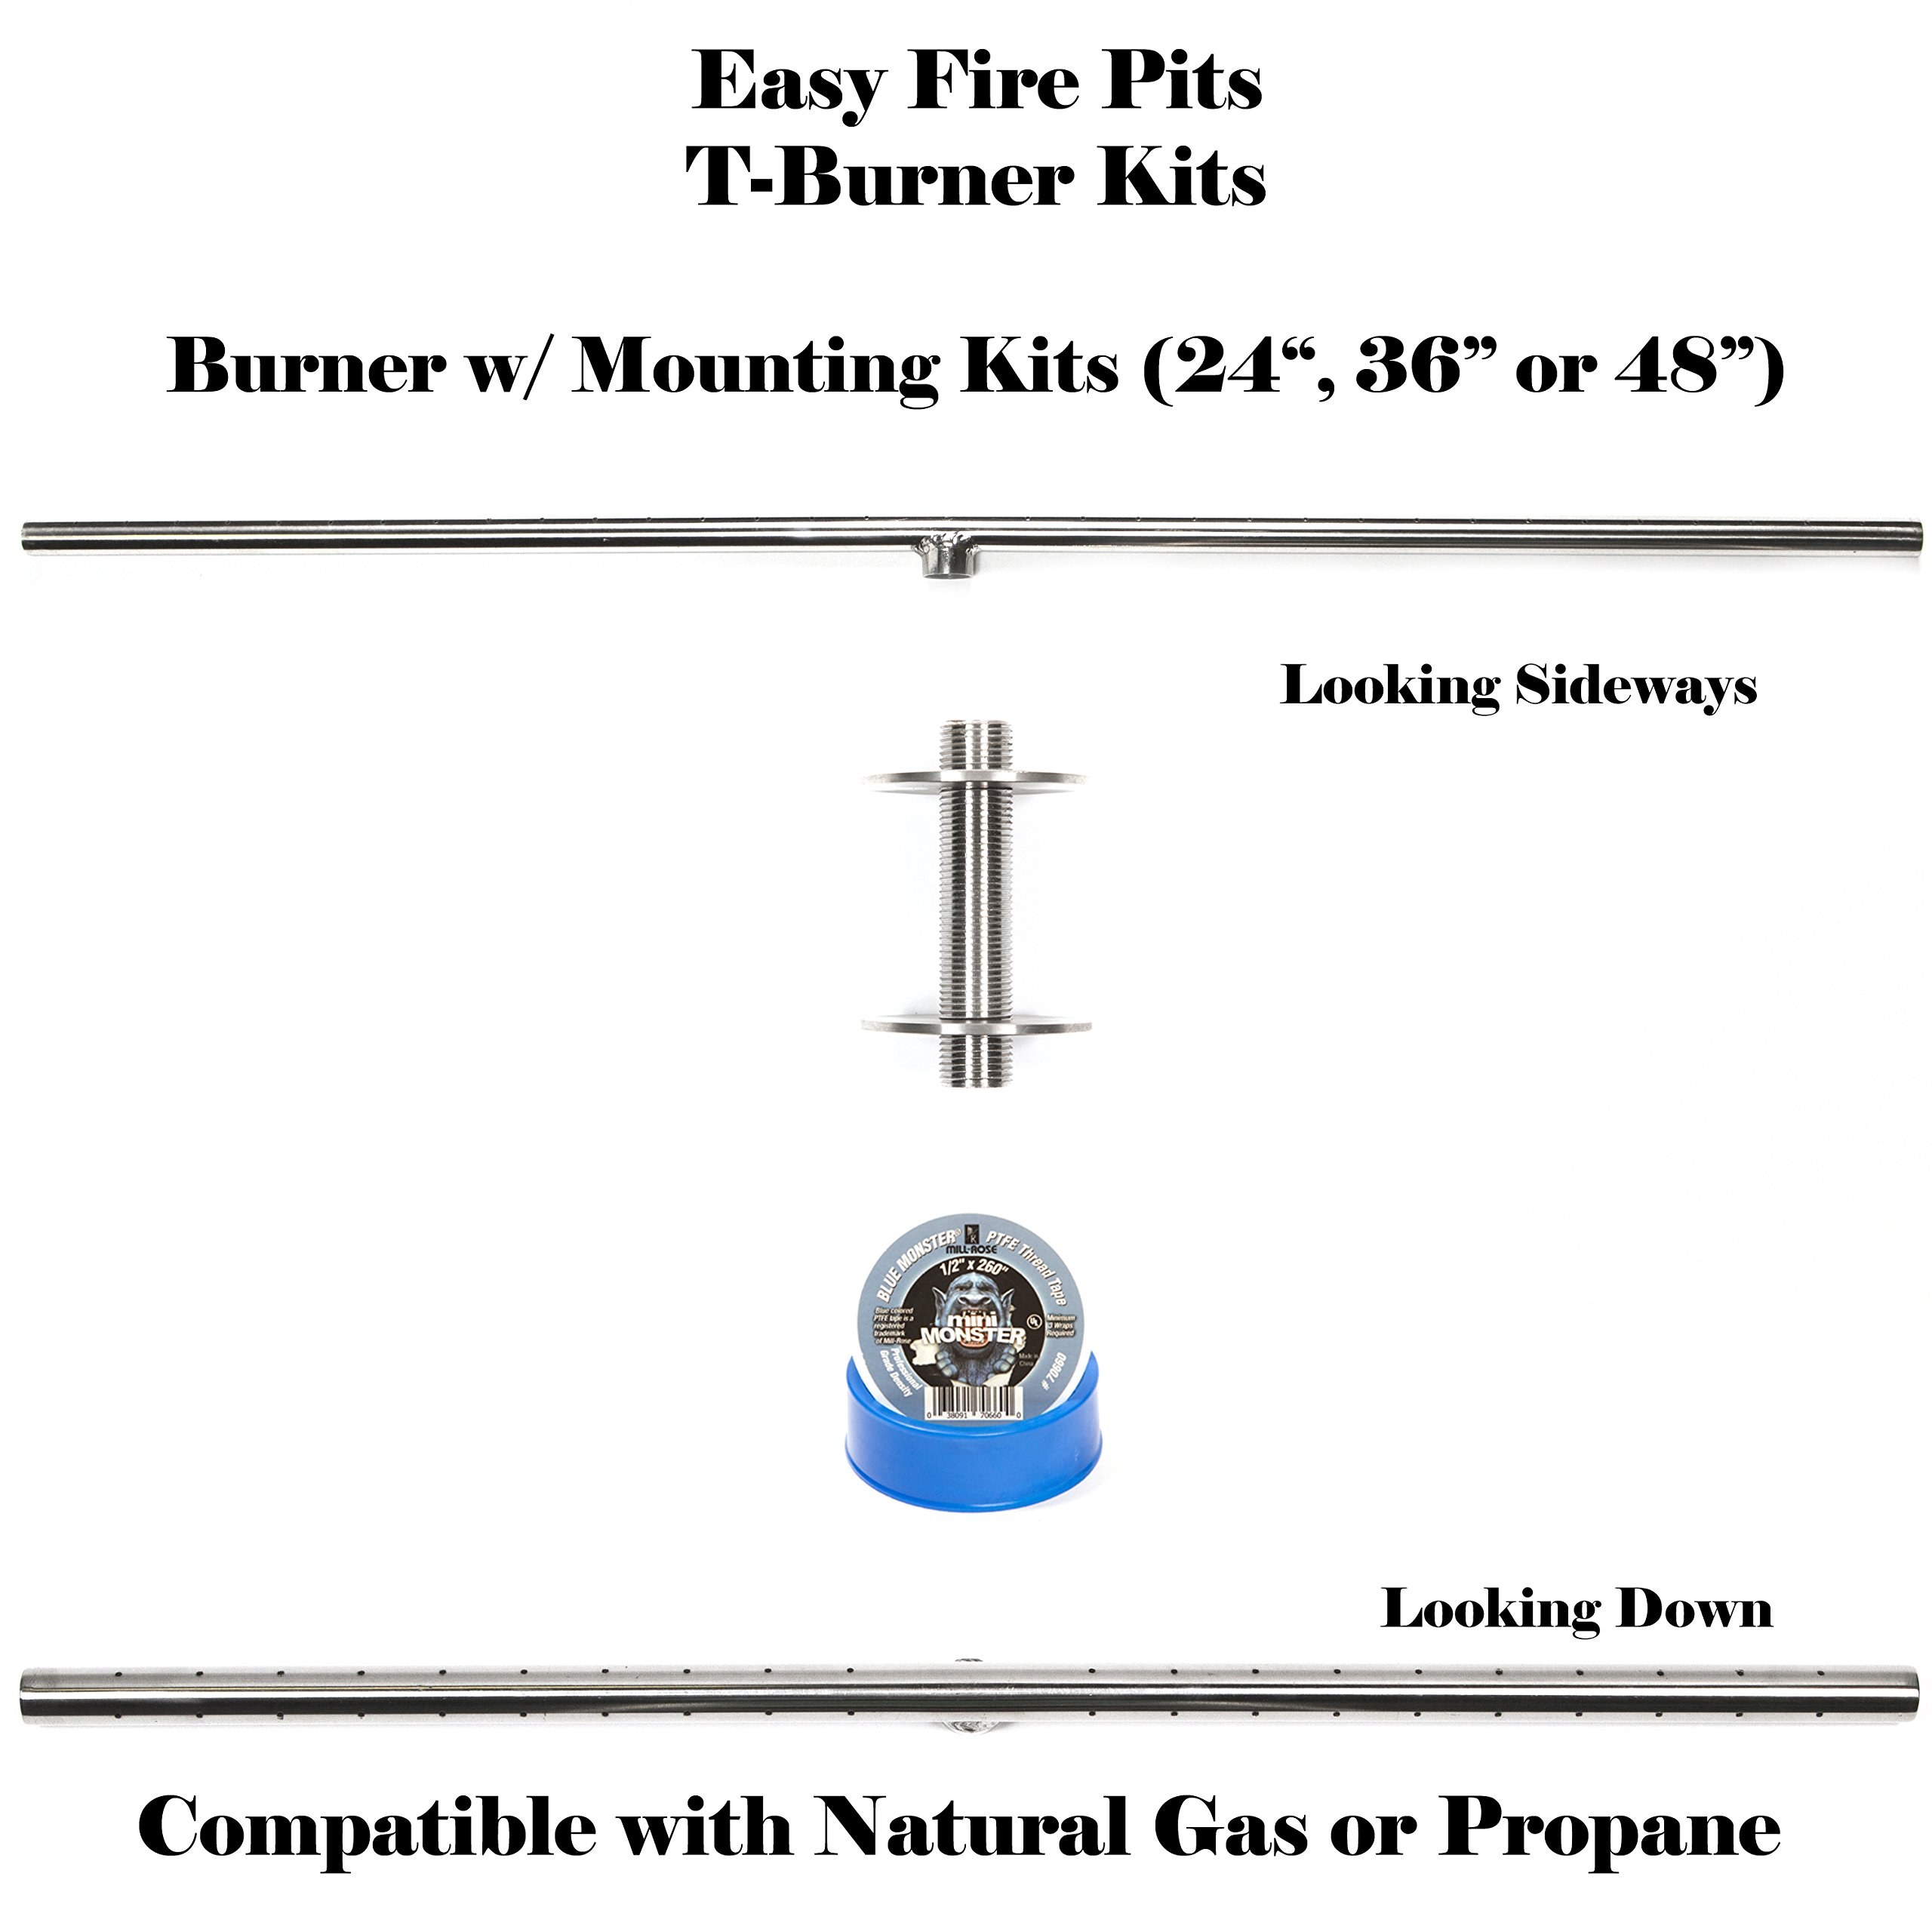 T48K: Ultra Low Profile DIY 48'' T-Burner and 4'' Adjustable Mounting Kit for Fire Table/ Fire Feature 316 Stainless (not Lessor 304) Convert Existing Table to Propane Fire Table. See EasyFirePits.com Gallery for How To!